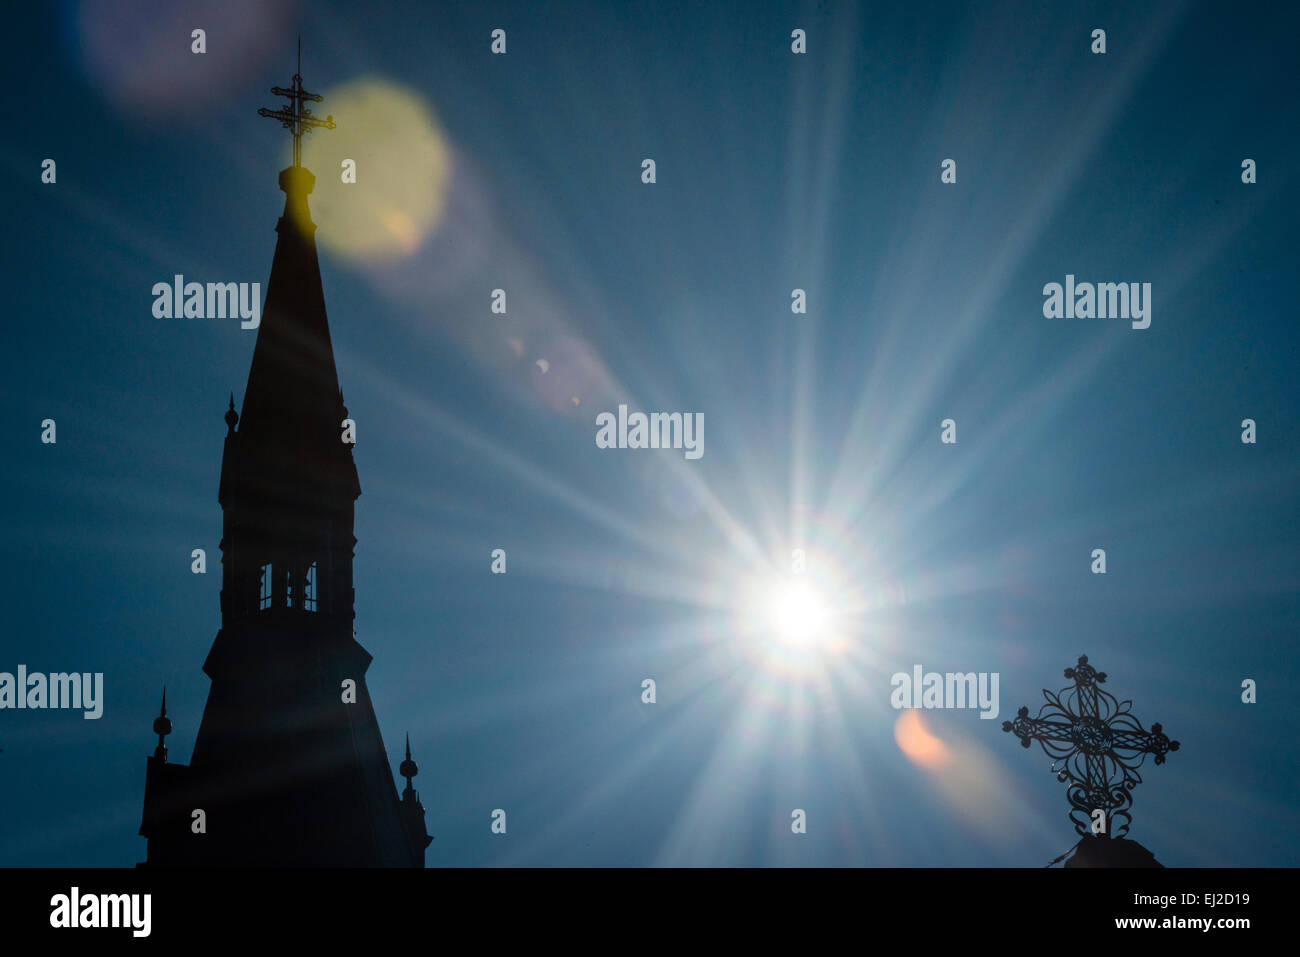 Pezinok, Slovakia. 20th March, 2015. Sickle-shaped sun behind a church during a partial solar eclipse in Pezinok, - Stock Image